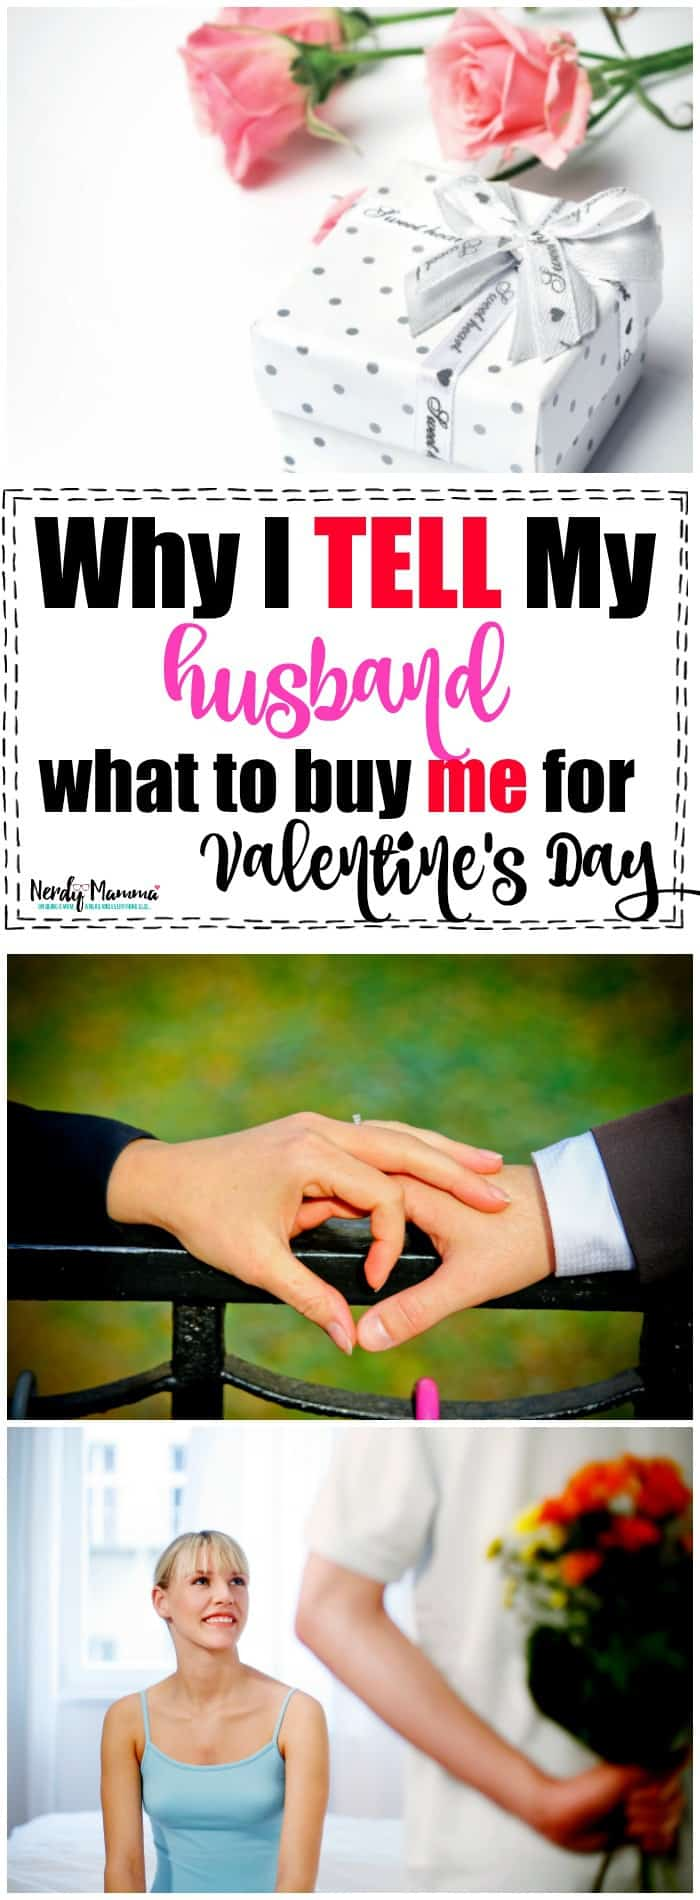 Why I tell my husband what to buy me for Valentine's Day - Totally rational reasons. I promise.